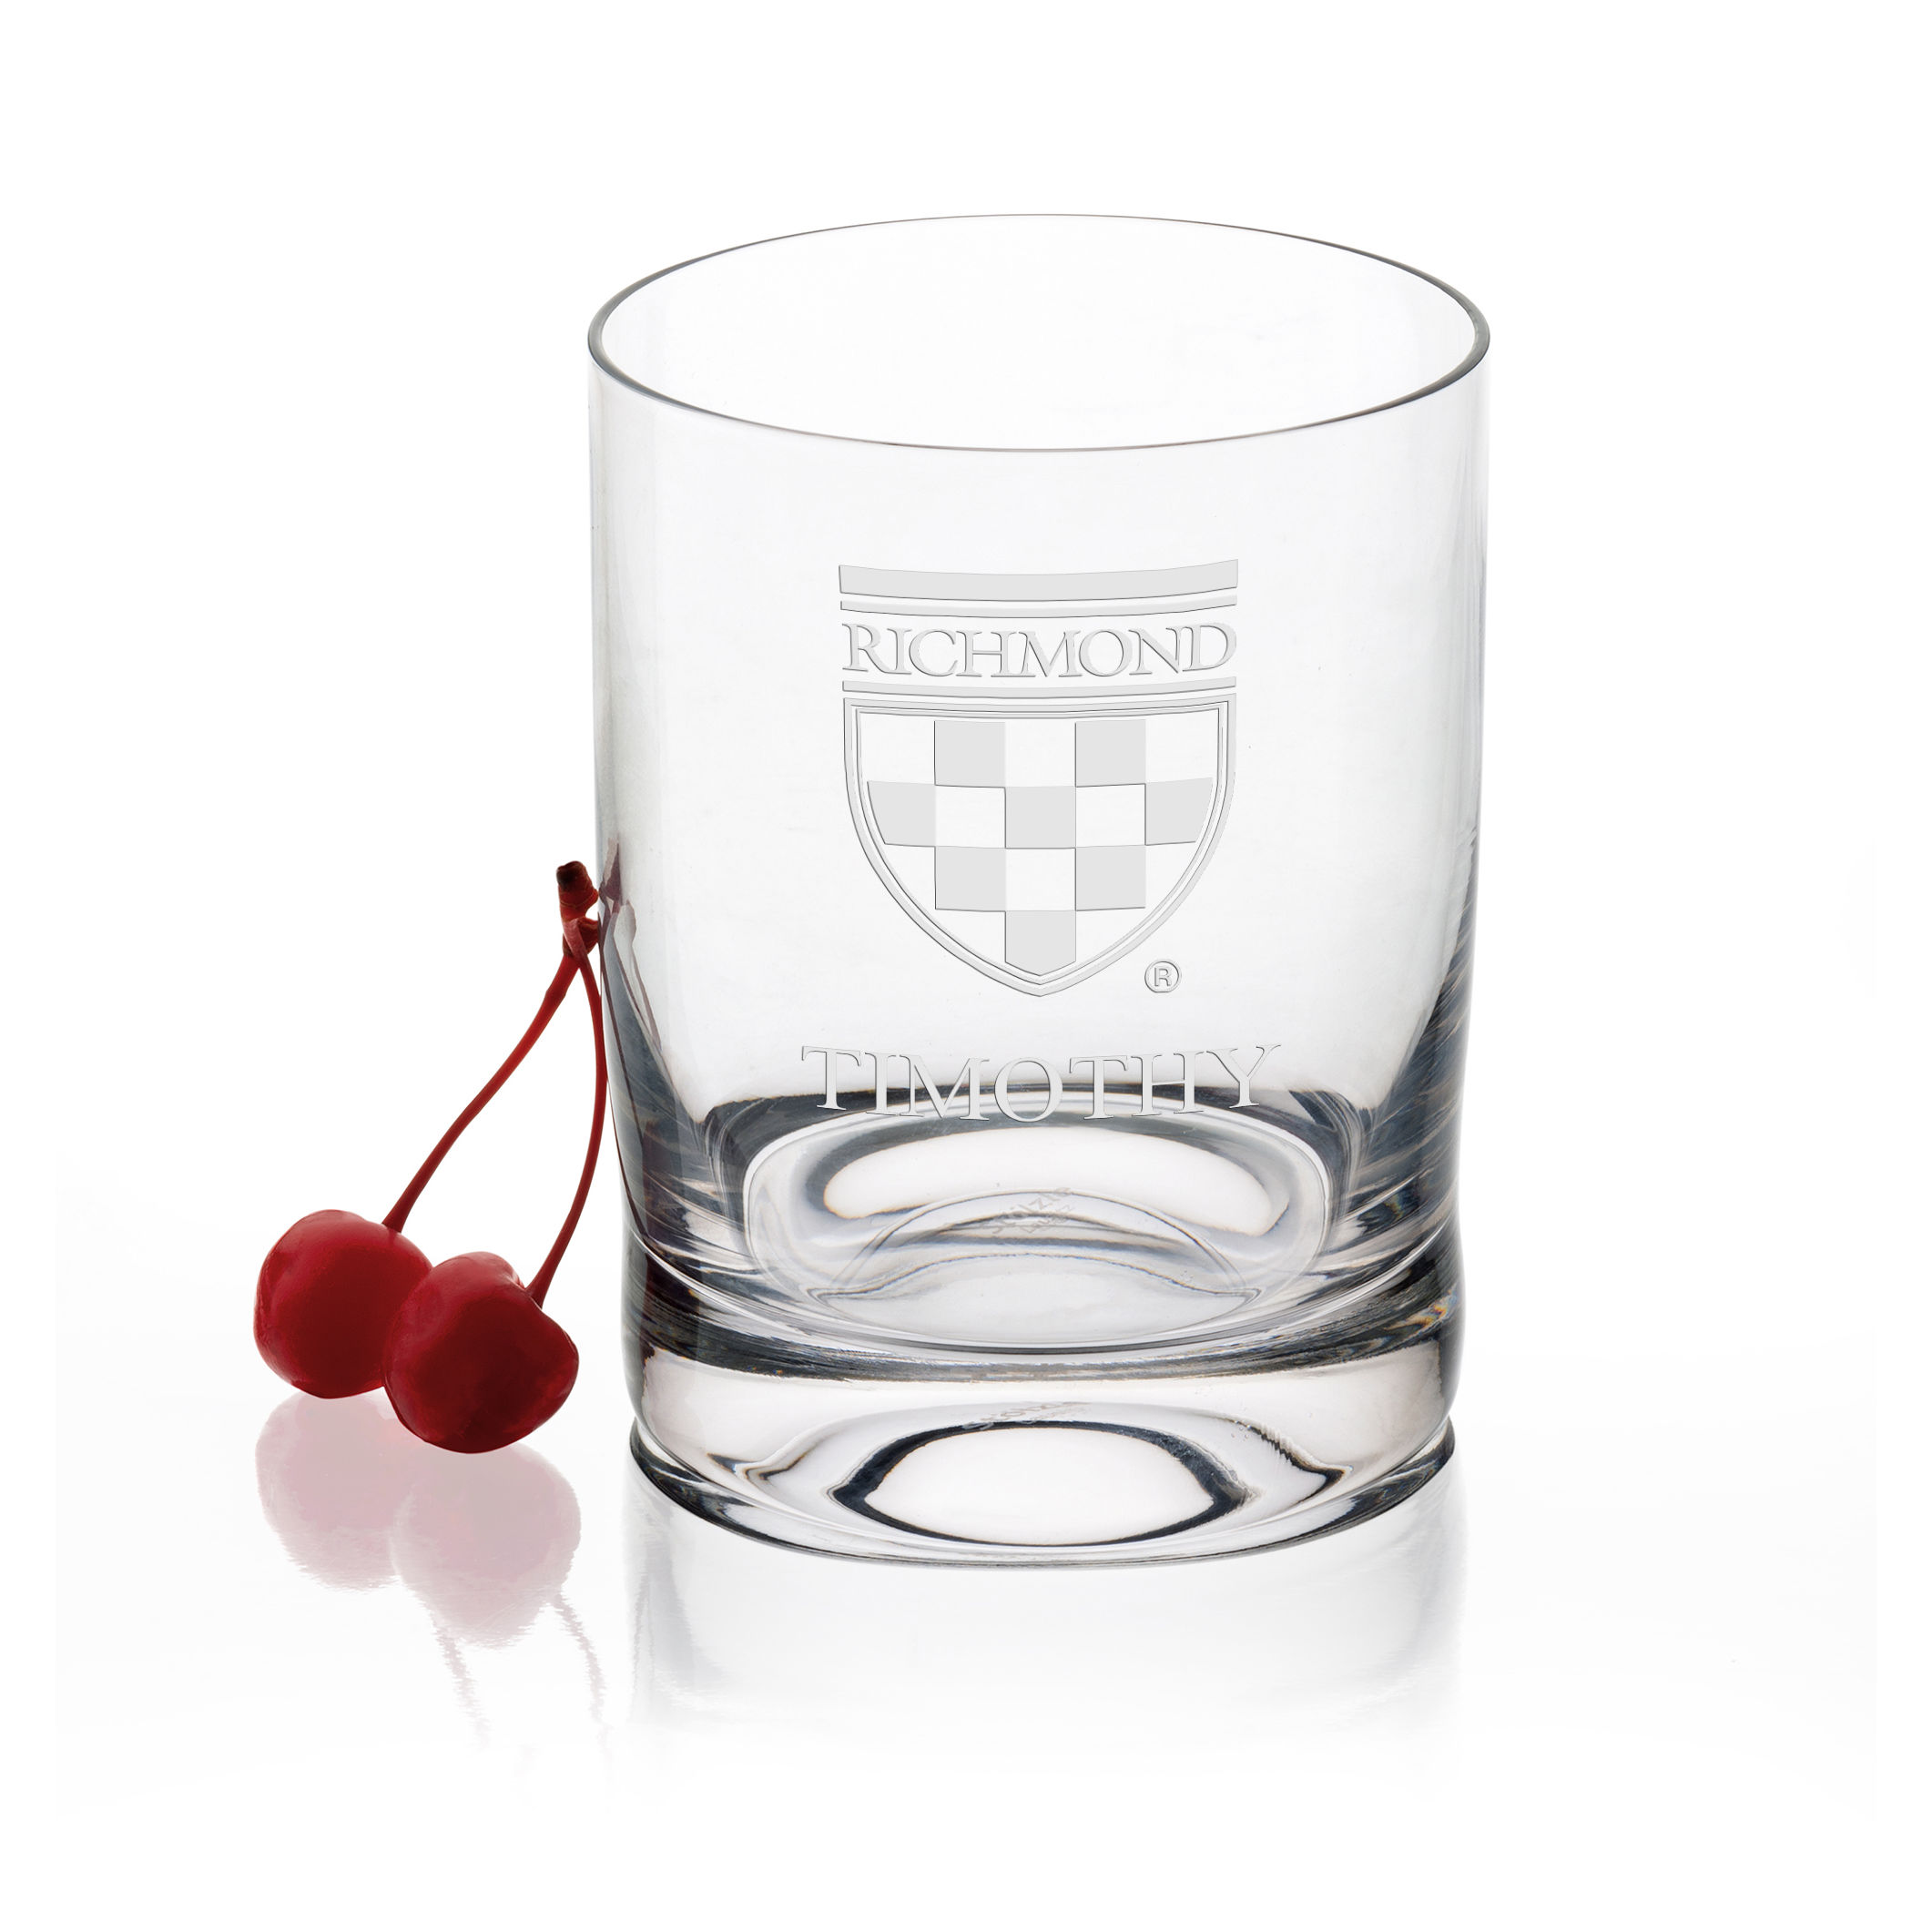 University of Richmond Tumbler Glasses - Set of 4